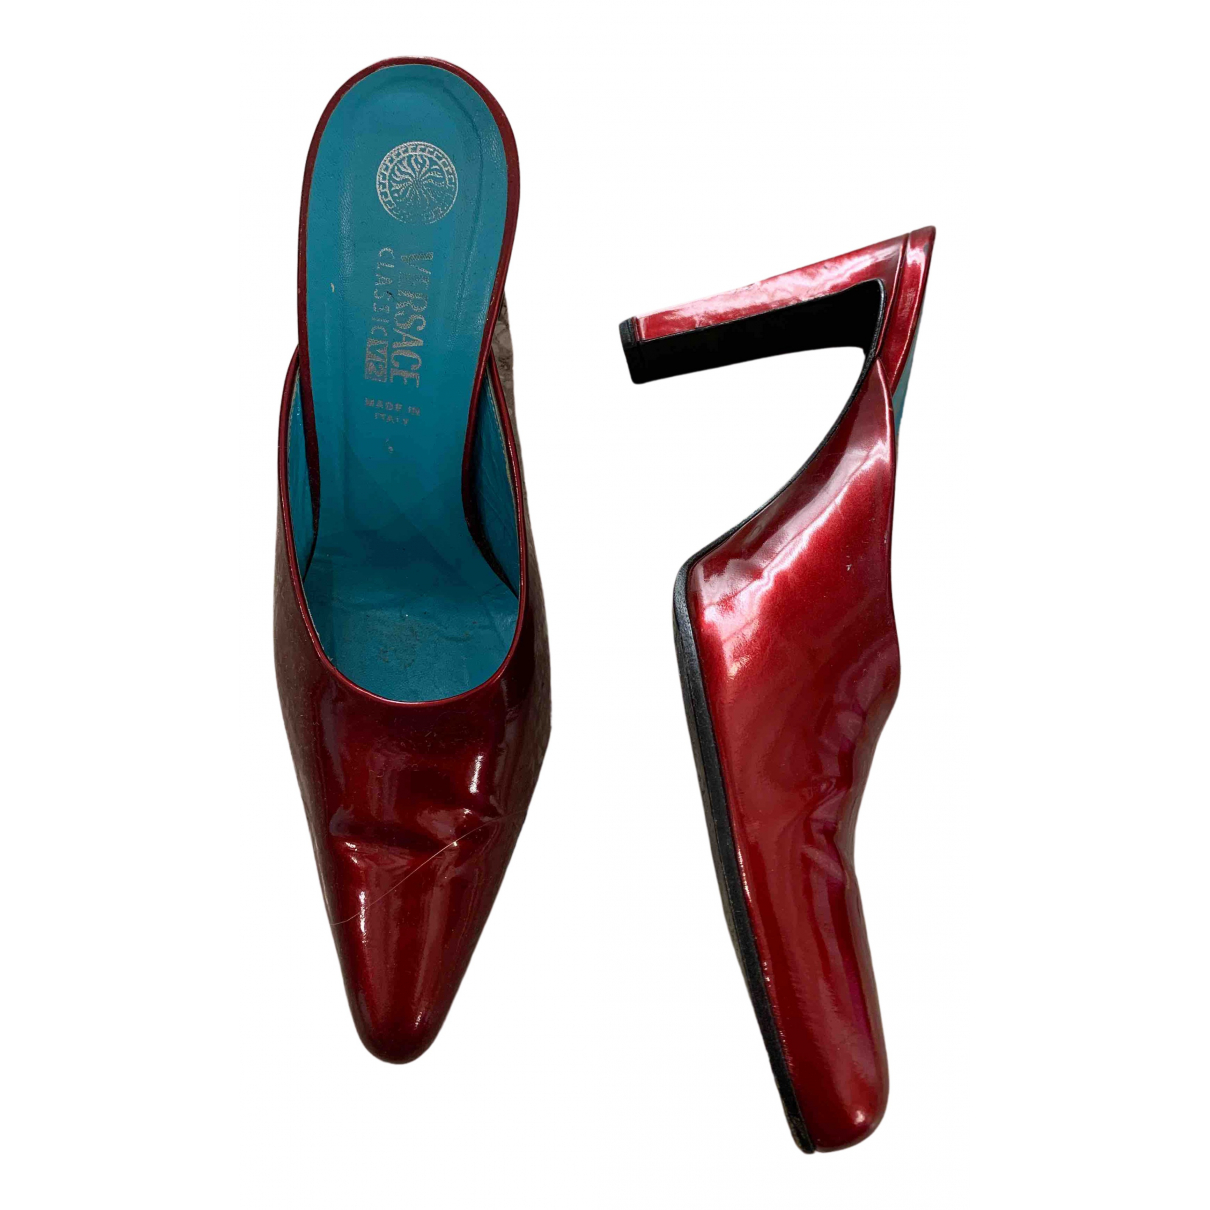 Versace N Red Patent leather Sandals for Women 37 EU